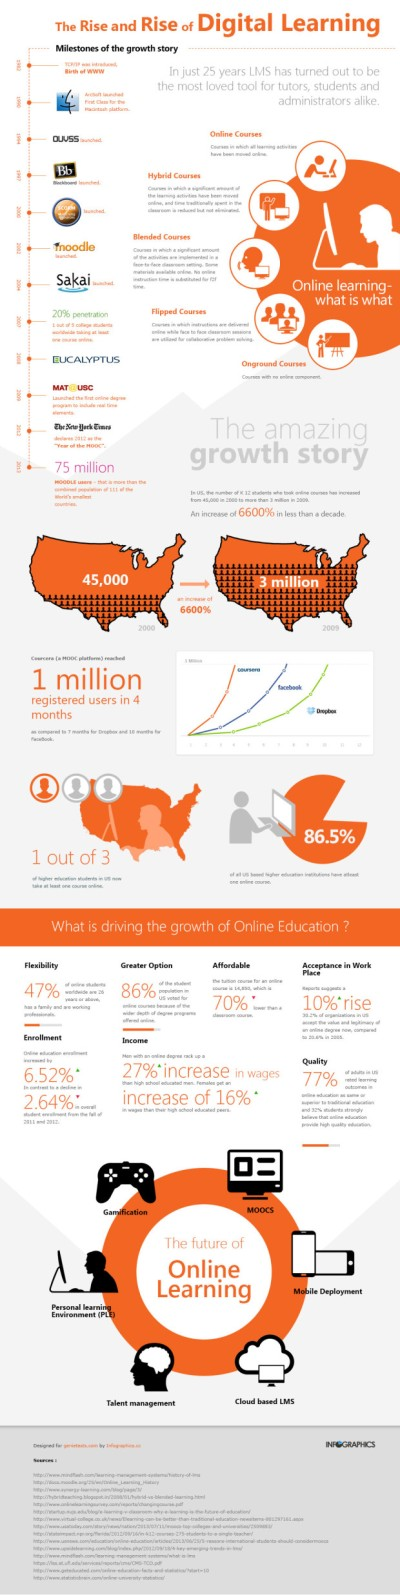 the-rise-and-rise-of-digital-education_5232009e38980-620x2473